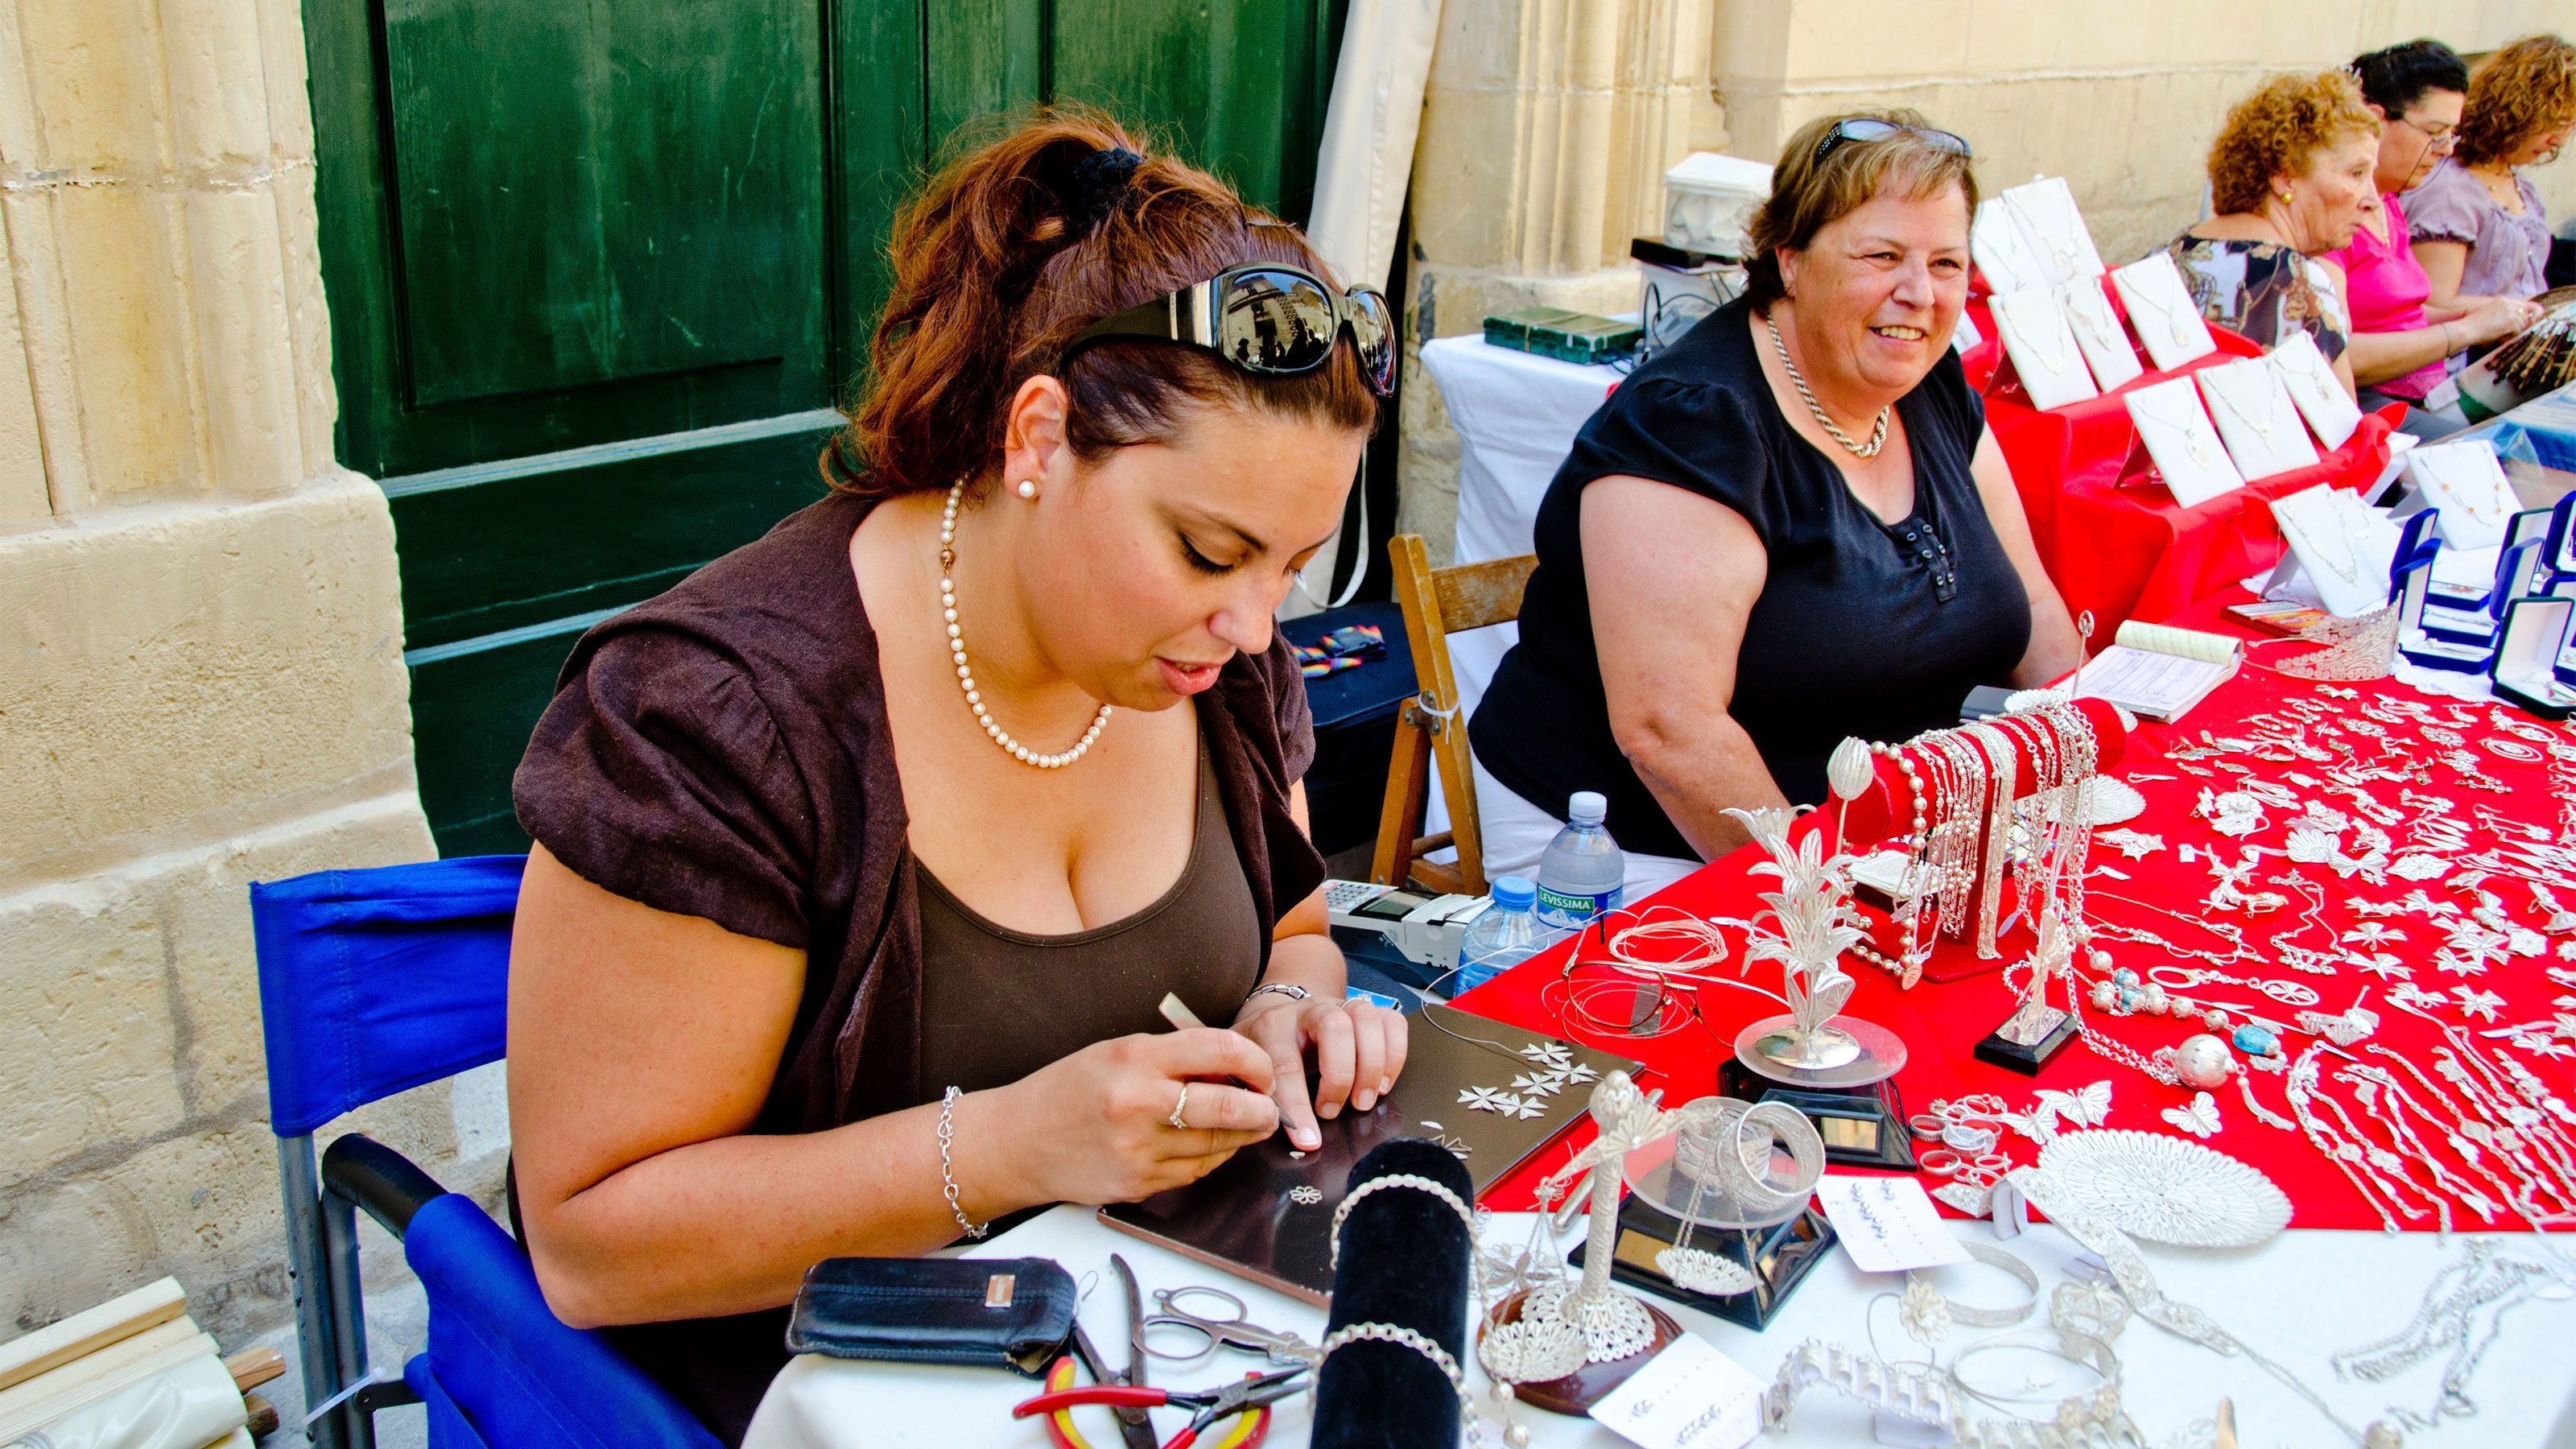 jewelry making at the market in Malta